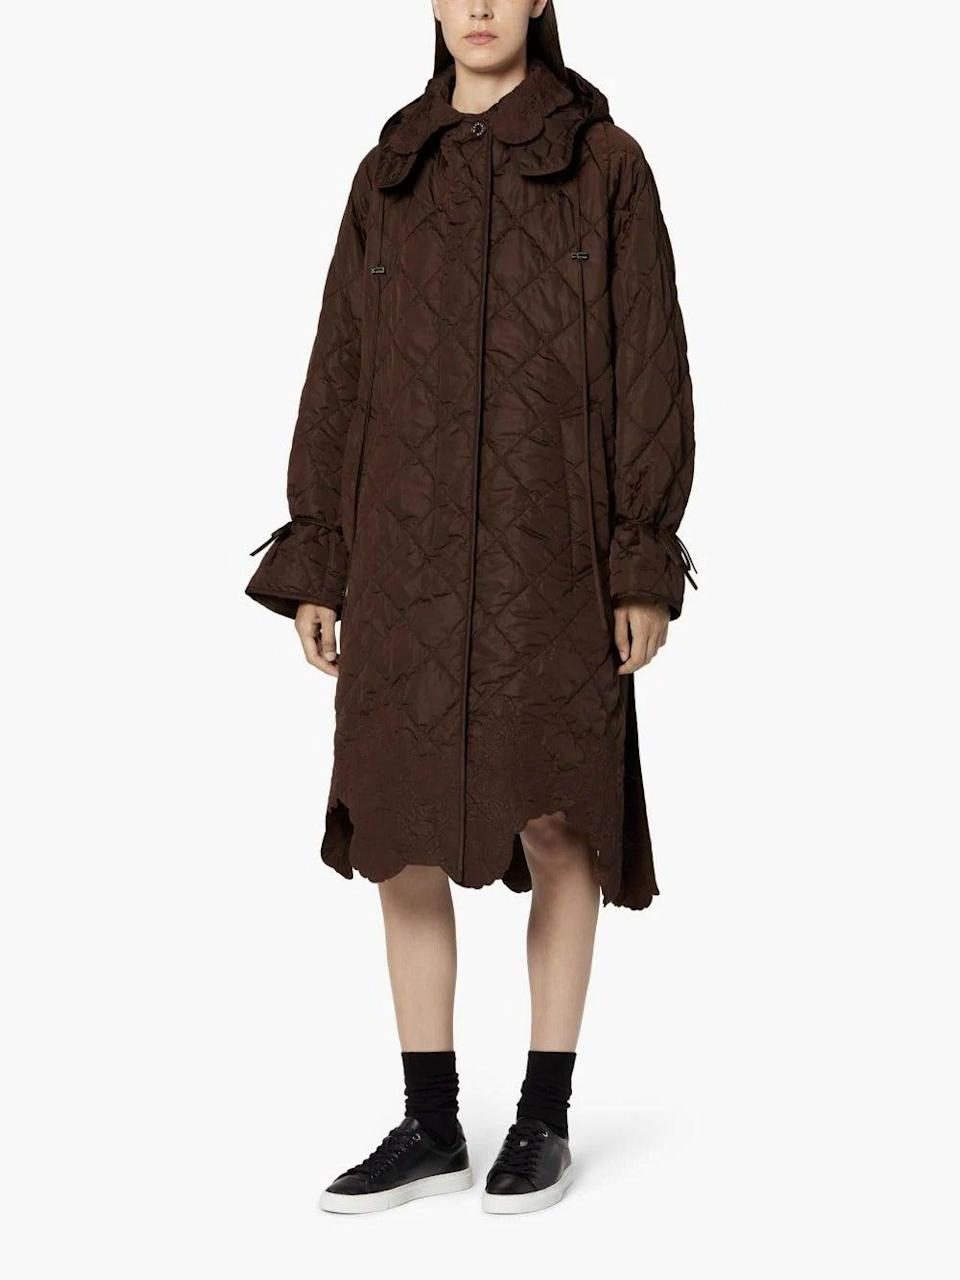 """<br><br><strong>Mackintosh x Cecilie Bahnsen</strong> Brown Nylon Oversized Hooded Coat, $, available at <a href=""""https://www.mackintosh.com/gb/shopping/cecilie-bahnsen-brown-nylon-oversized-hooded-coat-15465619?"""" rel=""""nofollow noopener"""" target=""""_blank"""" data-ylk=""""slk:Mackintosh"""" class=""""link rapid-noclick-resp"""">Mackintosh</a>"""